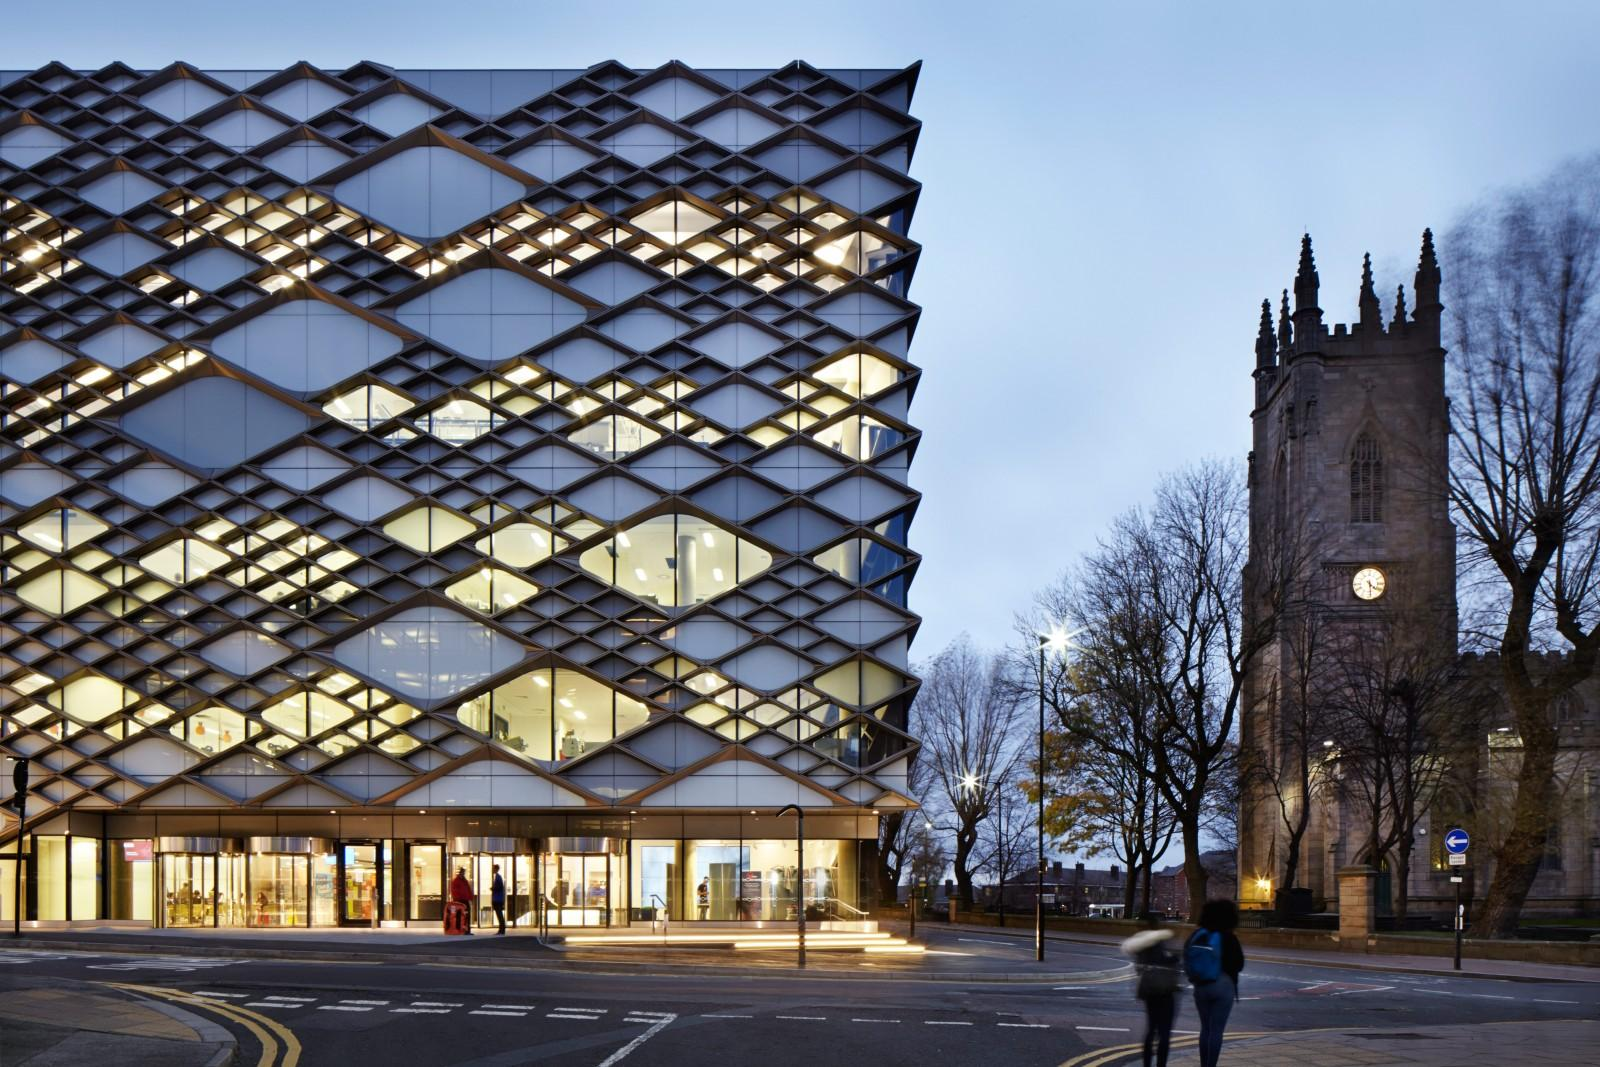 Uni's ugliest building has achieved more than you ever will